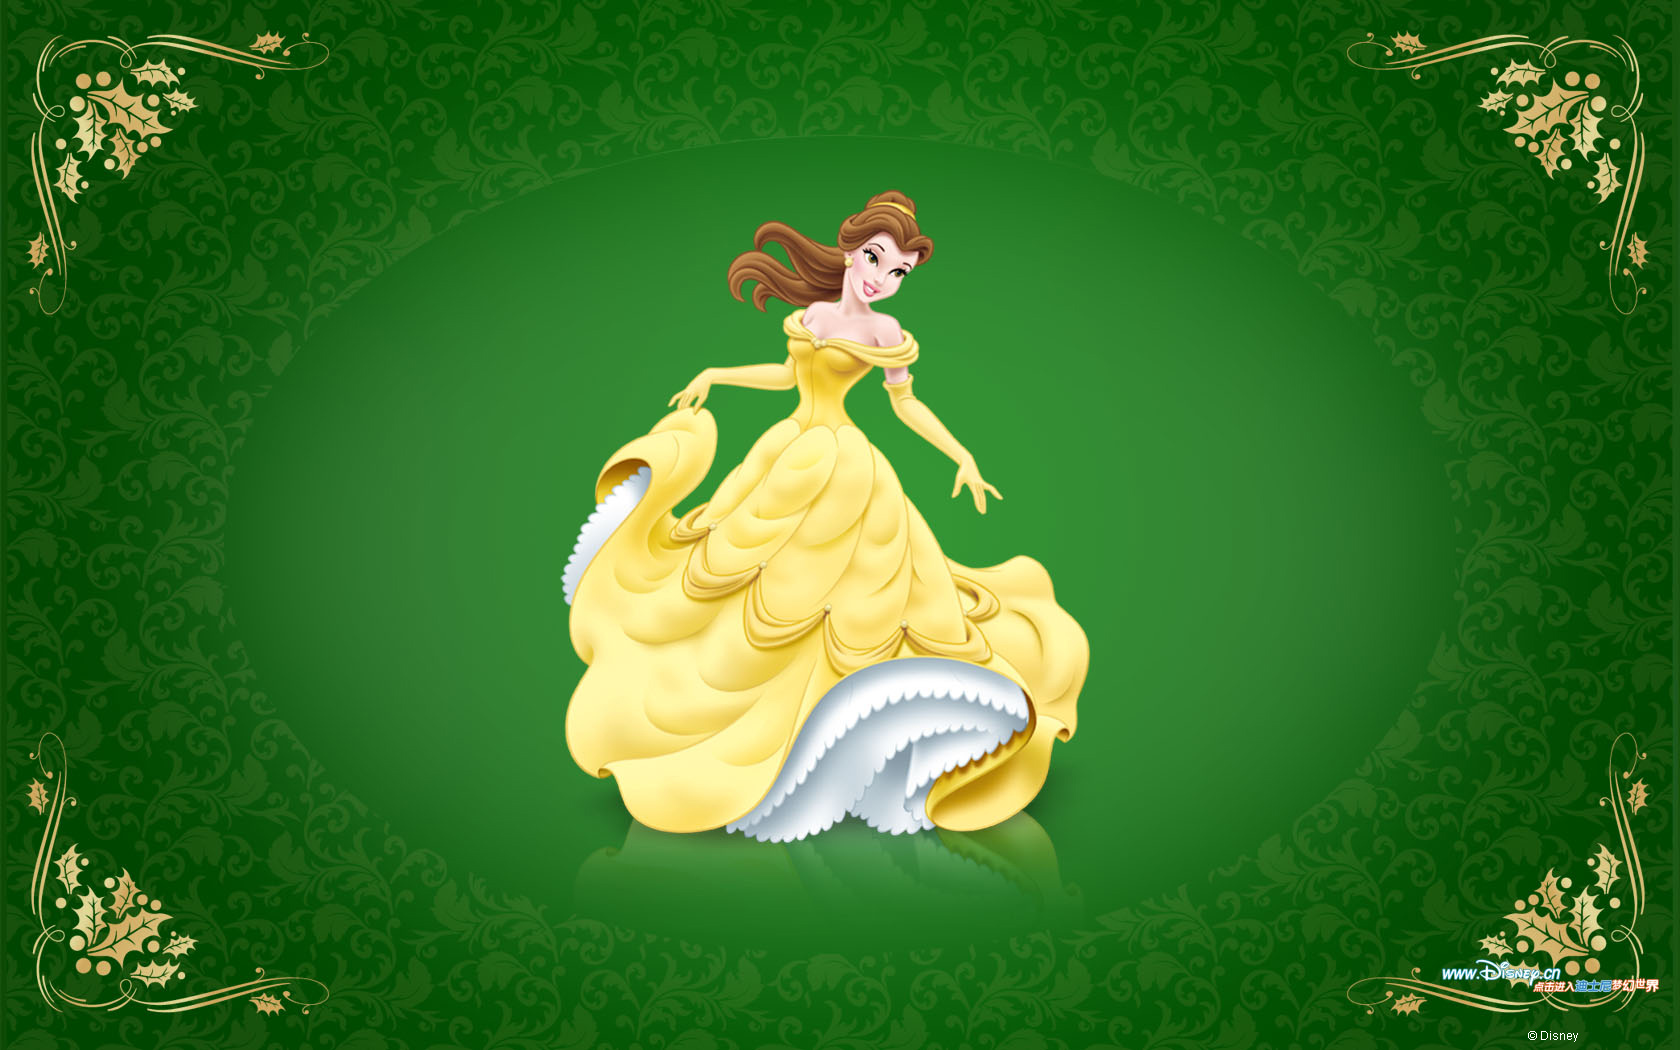 Disney Princess 24336